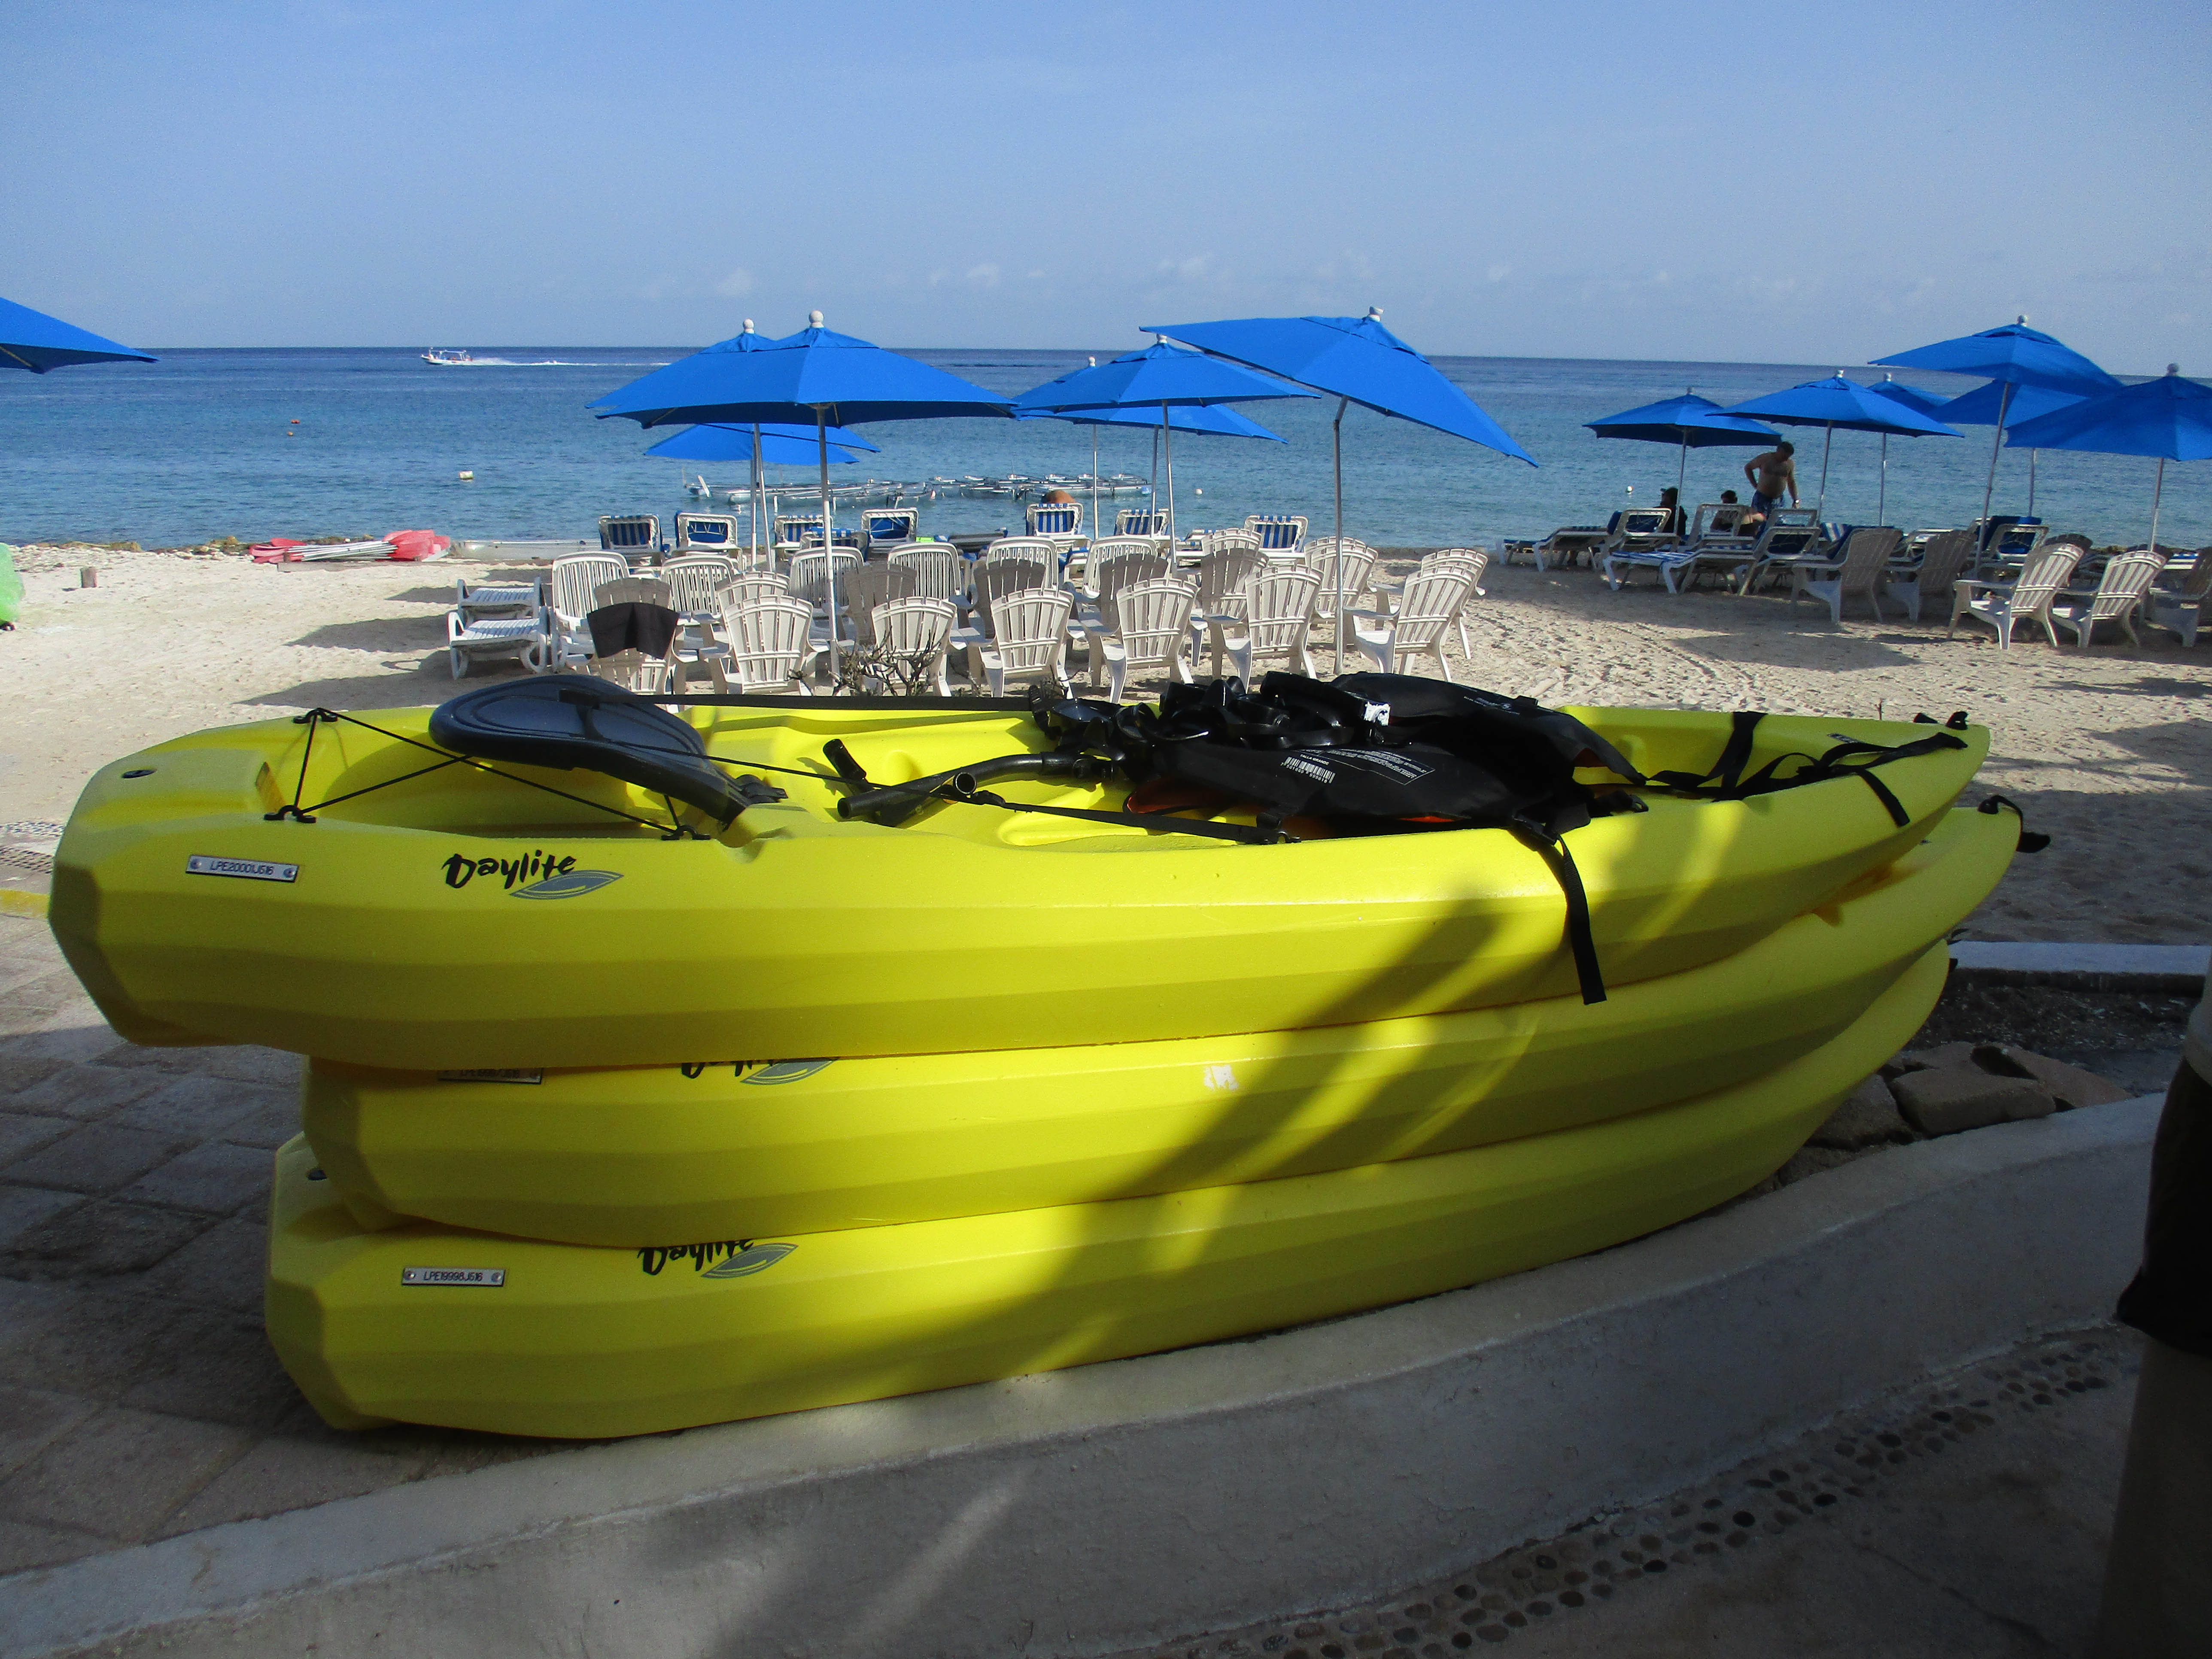 Best Bahamas Shore Excursions for Families - Cruise Critic